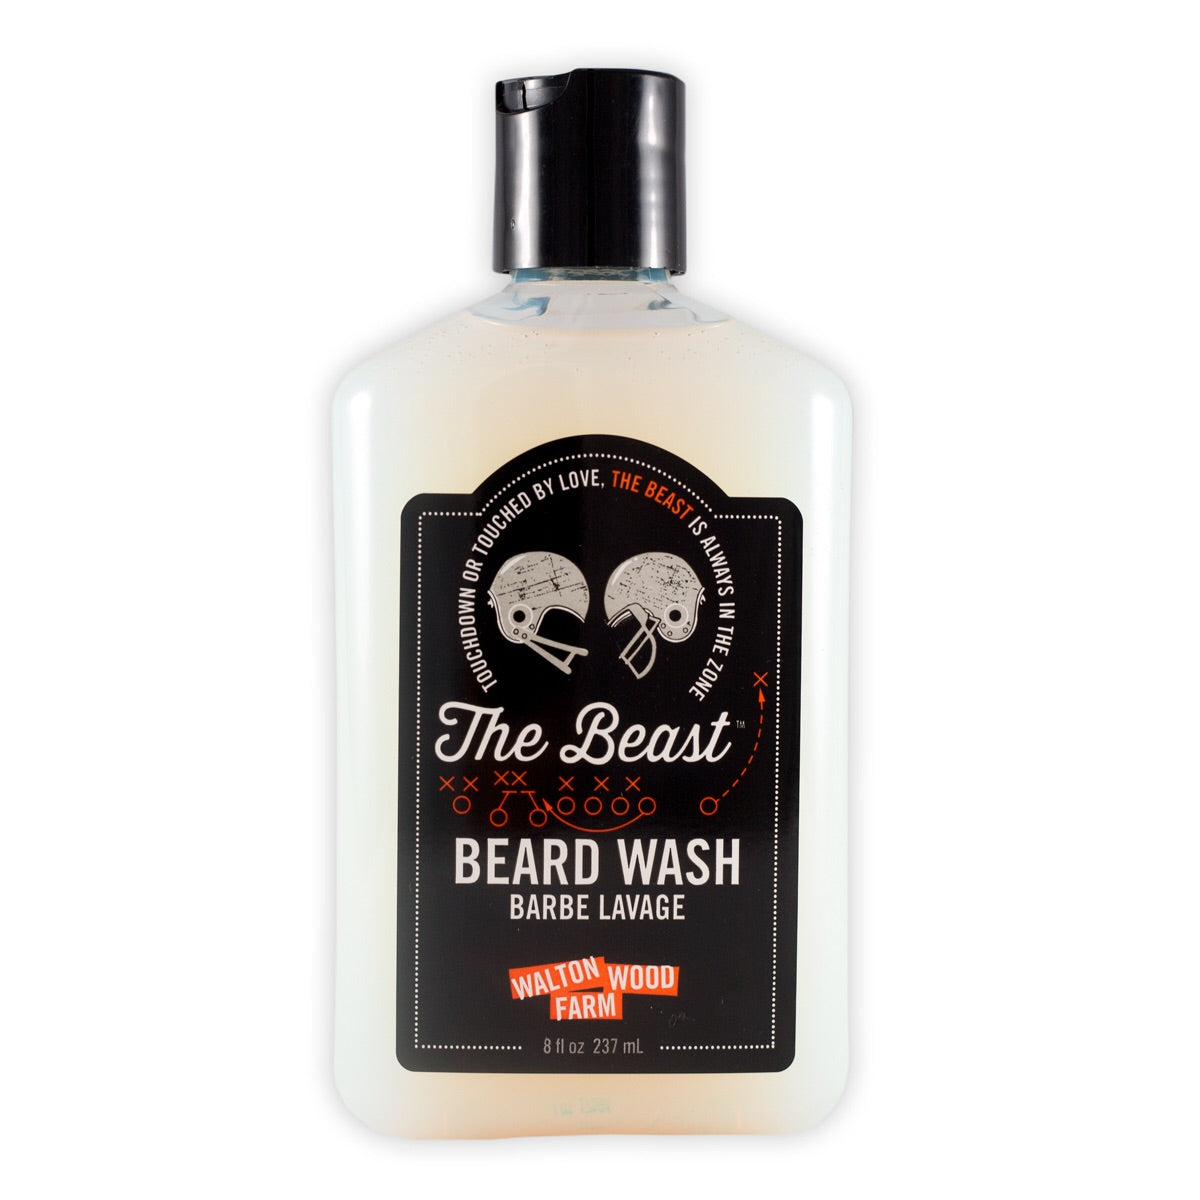 Walton Wood Farm The Beast - Beard Wash